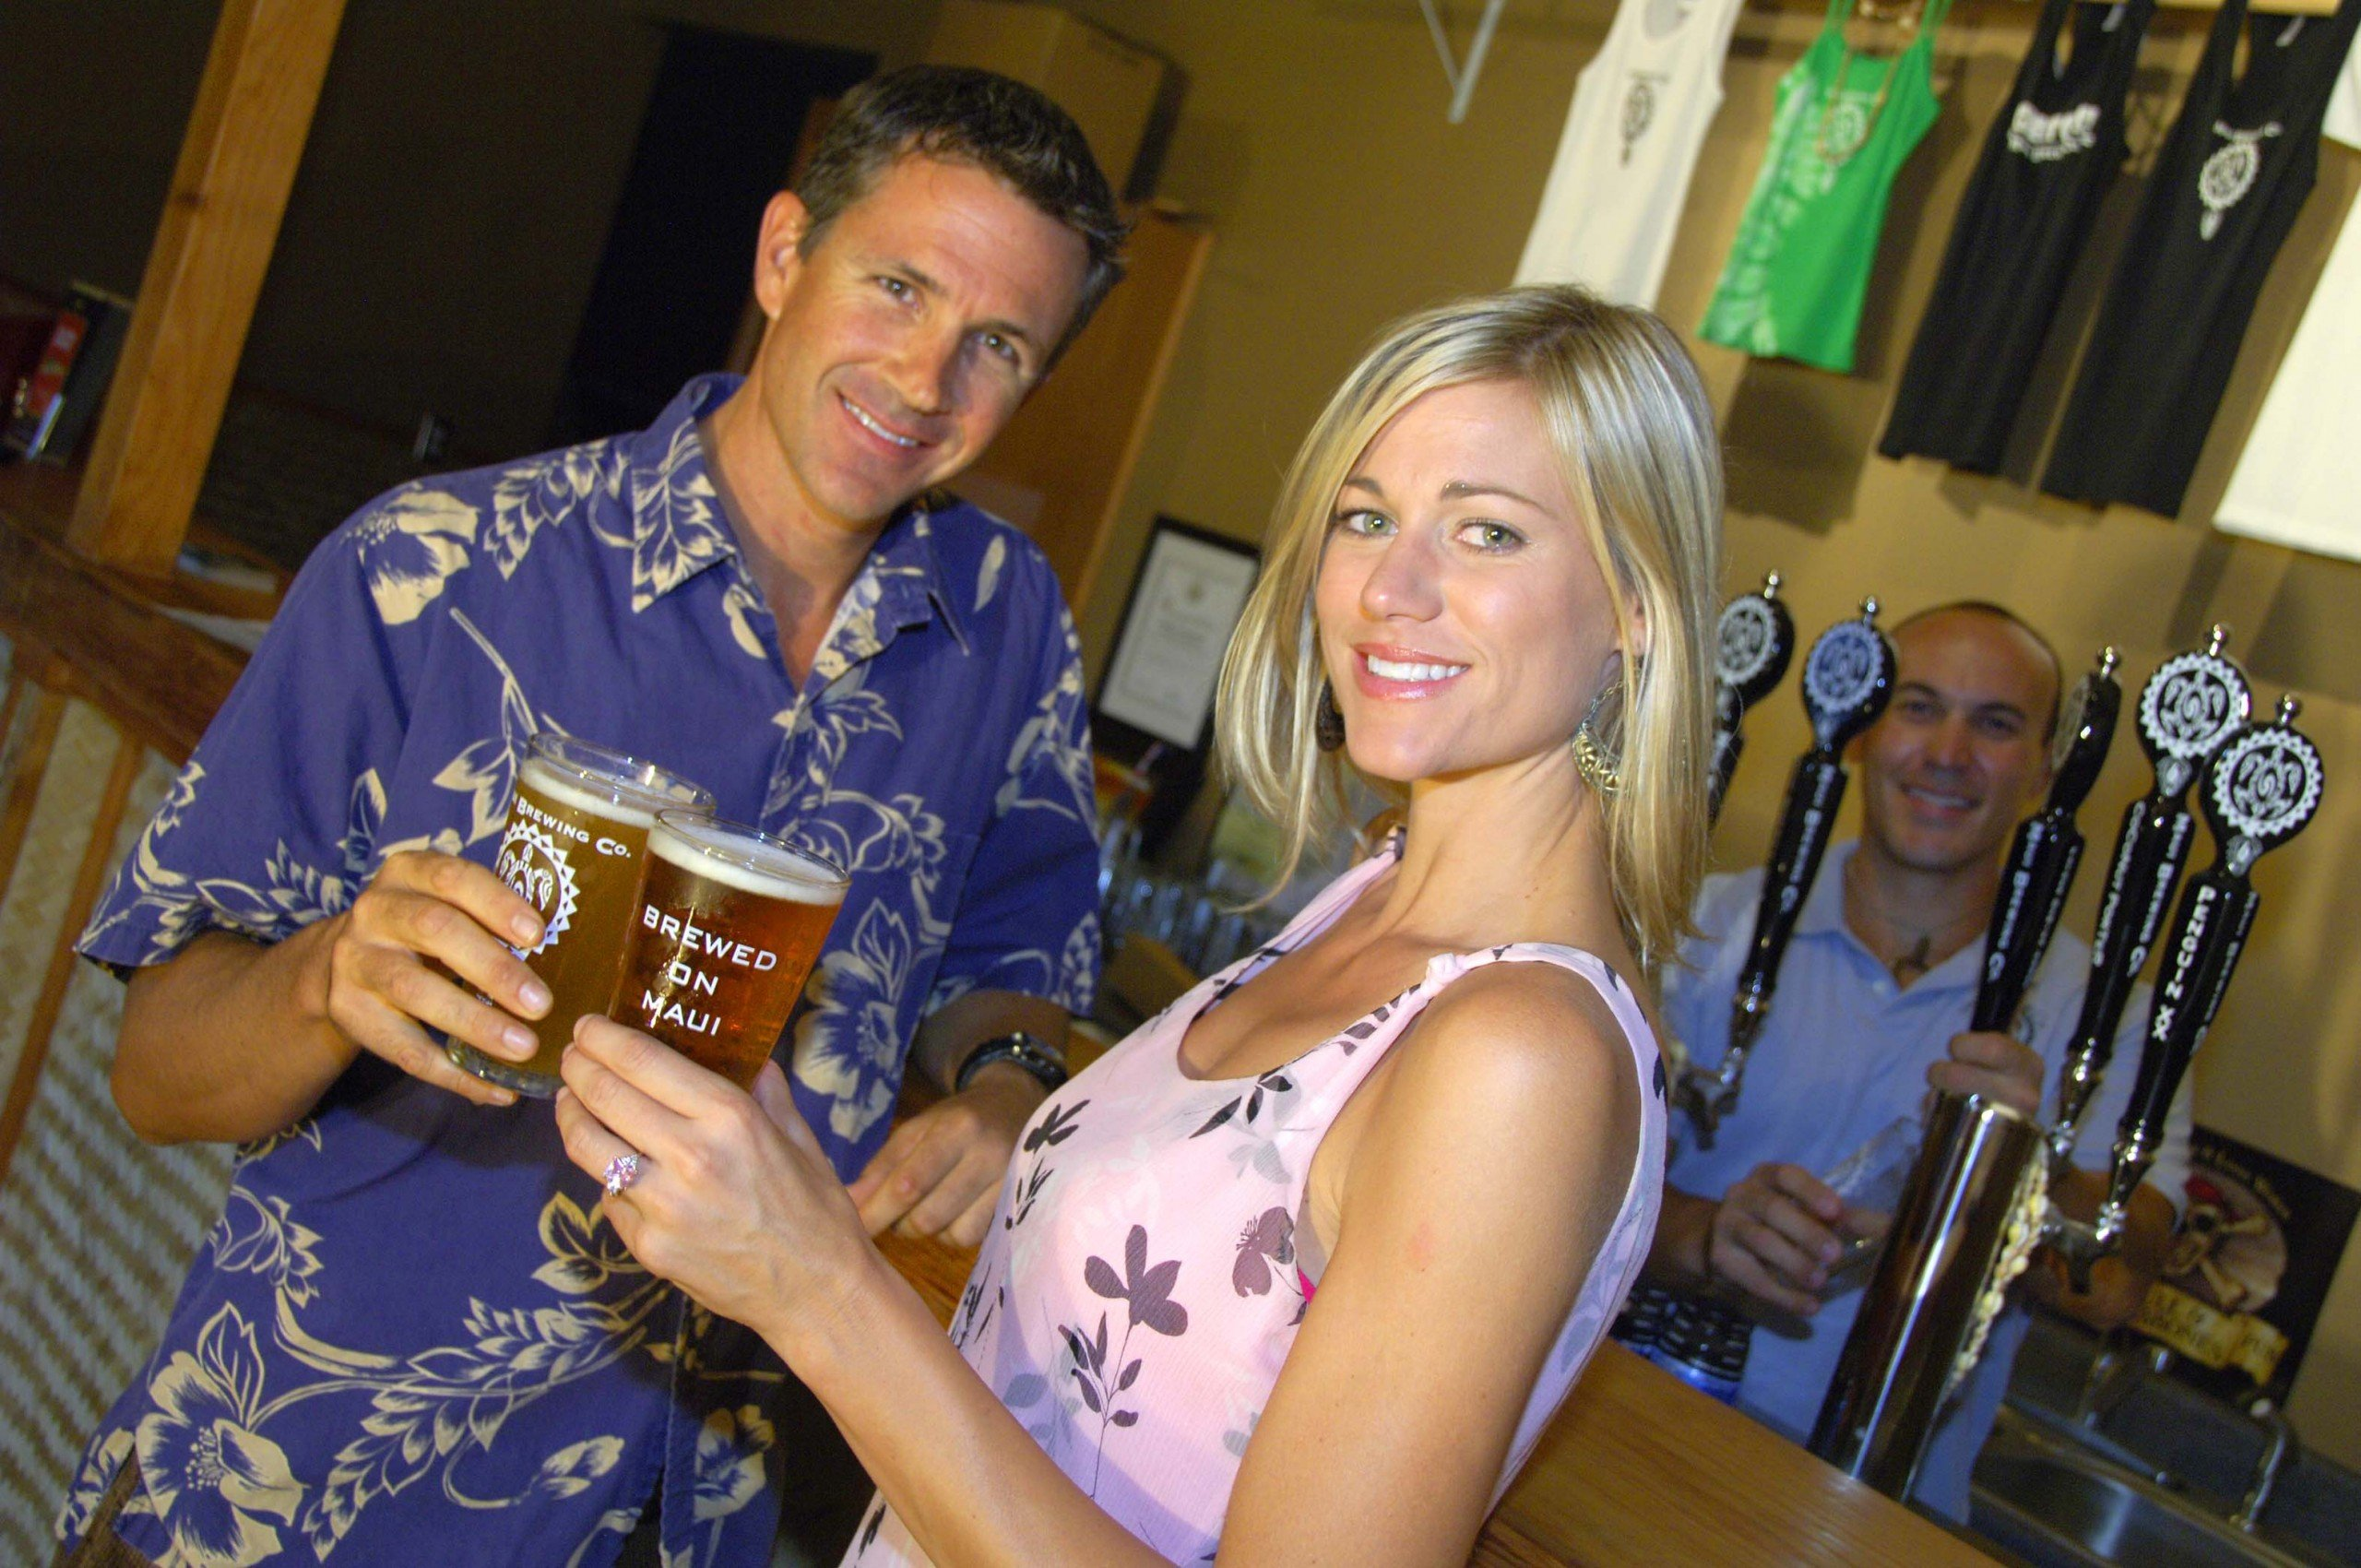 Maui Brewing Co. produces all its beer on island and operates its own pub. Photo: Courtesy Maui Brewing